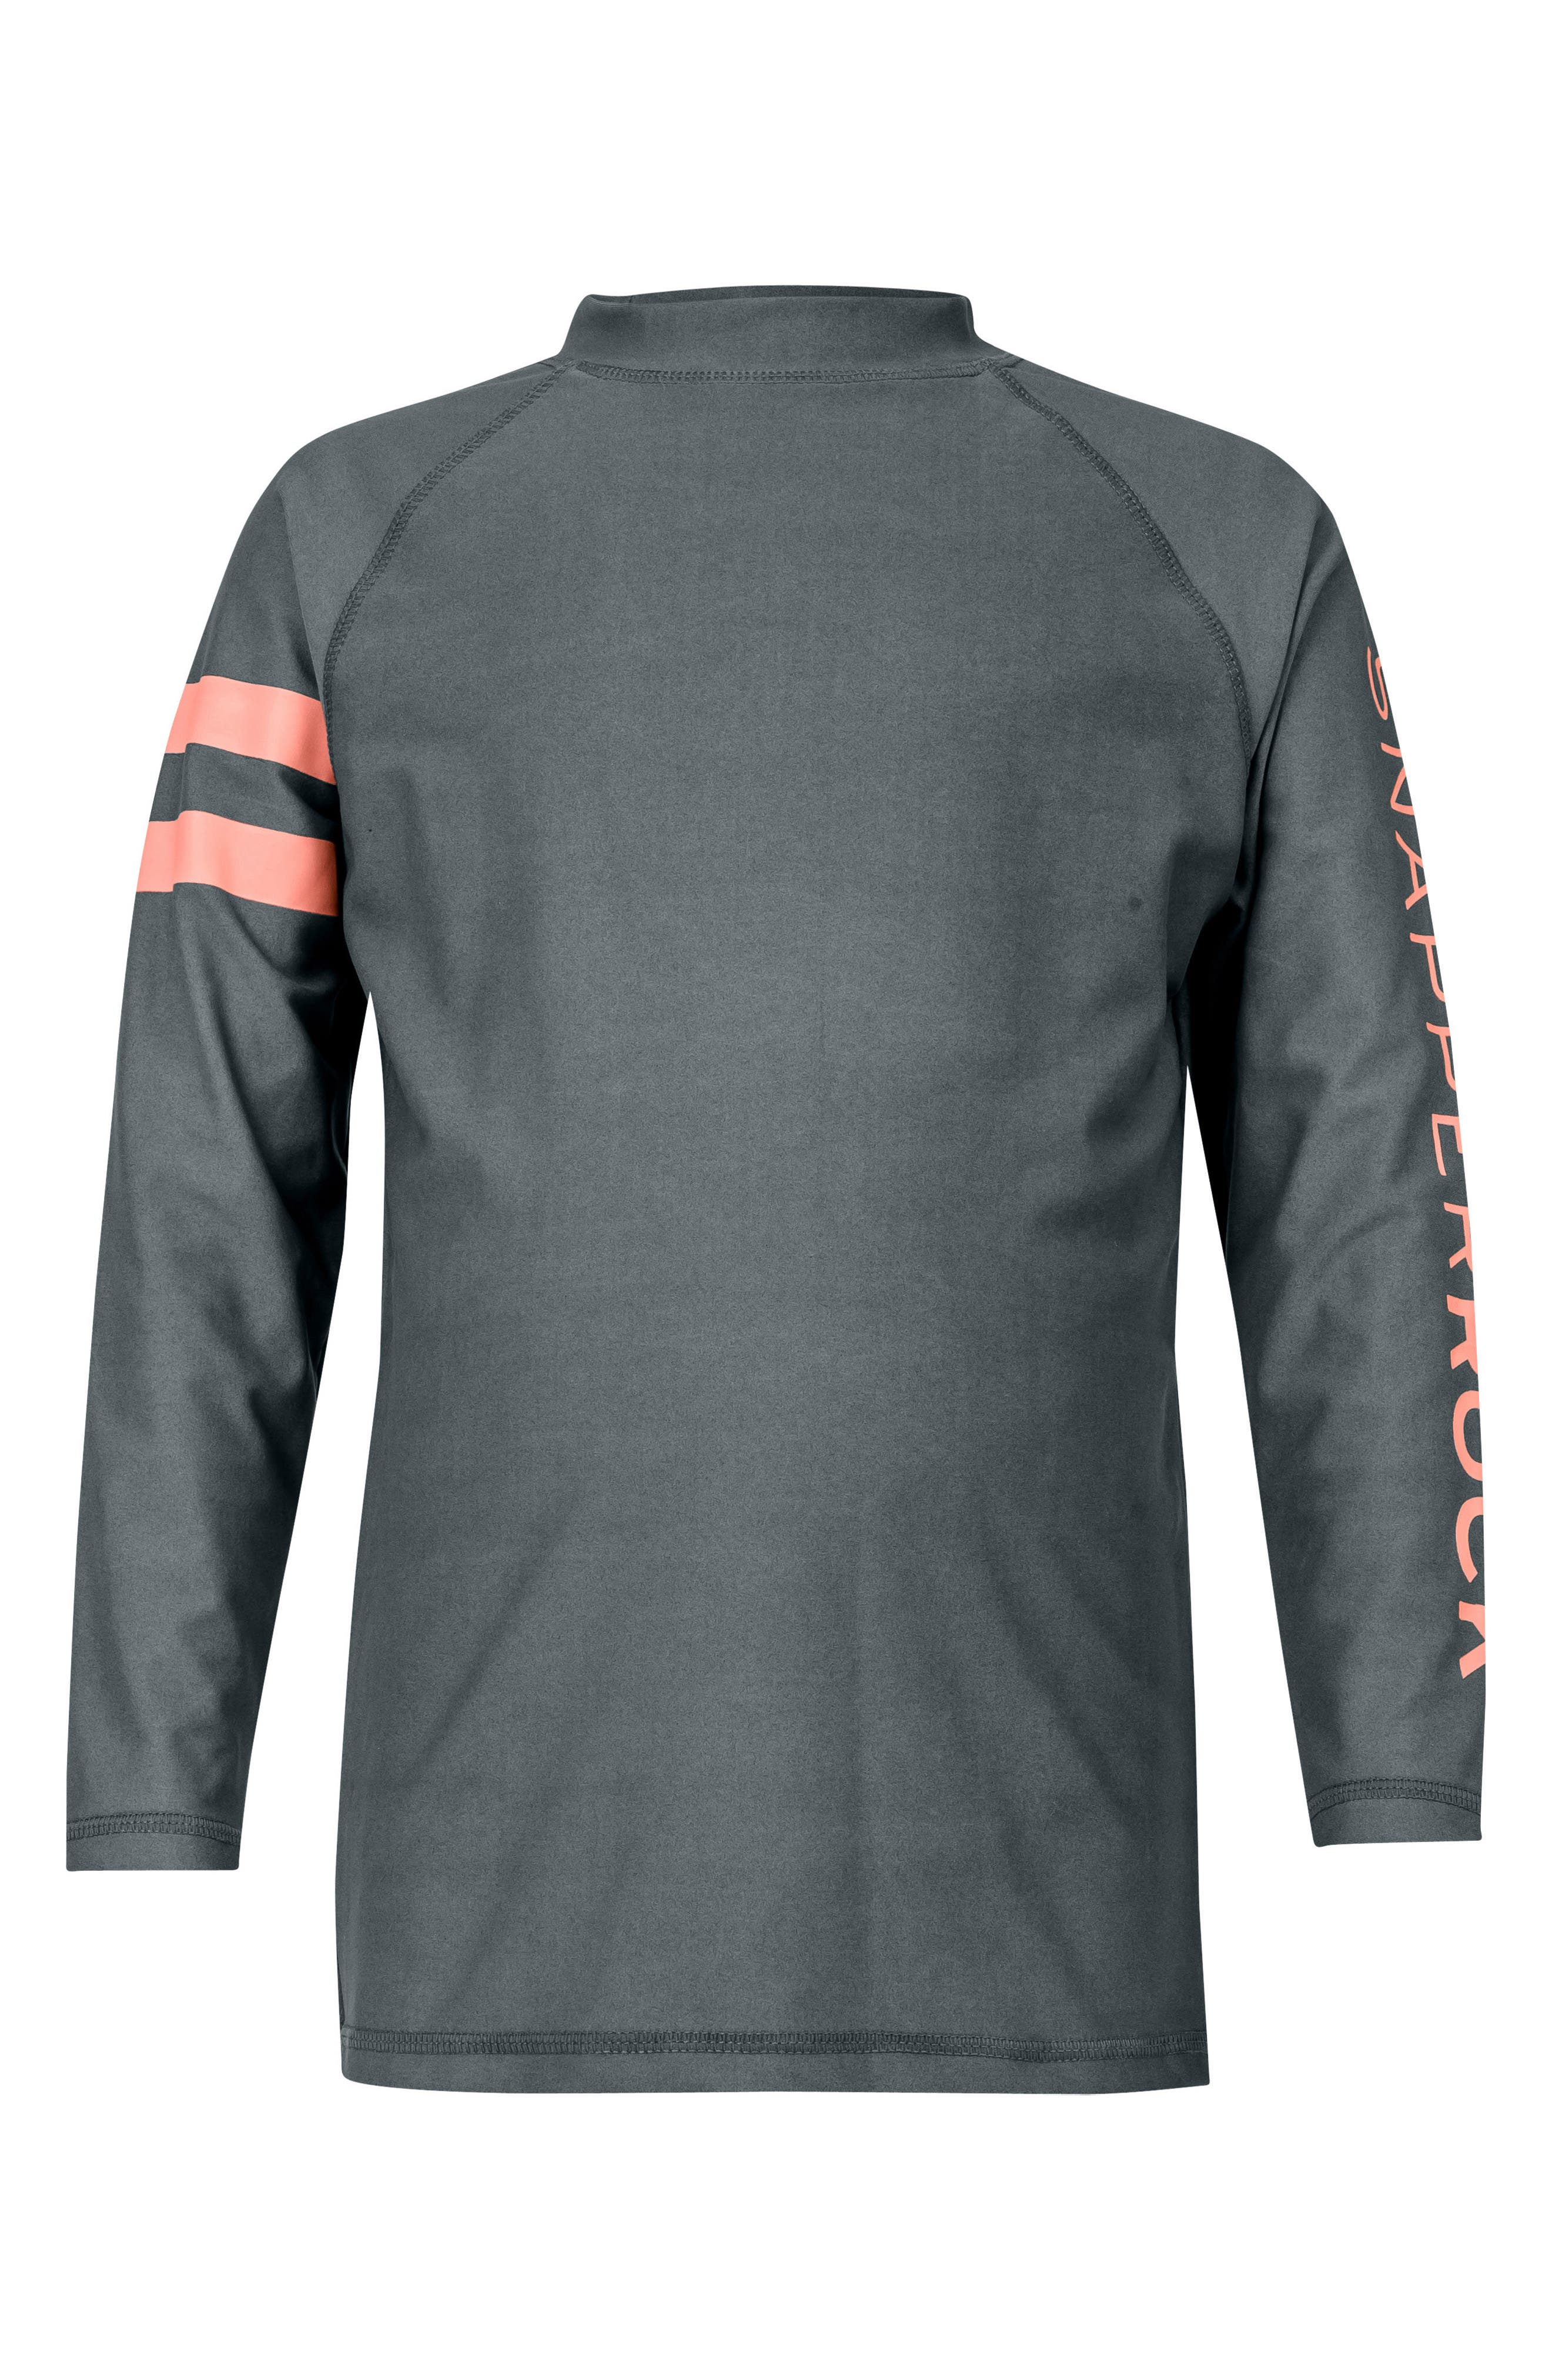 Raglan Long Sleeve Rashguard,                         Main,                         color, Steel Grey/ Coral Stripe